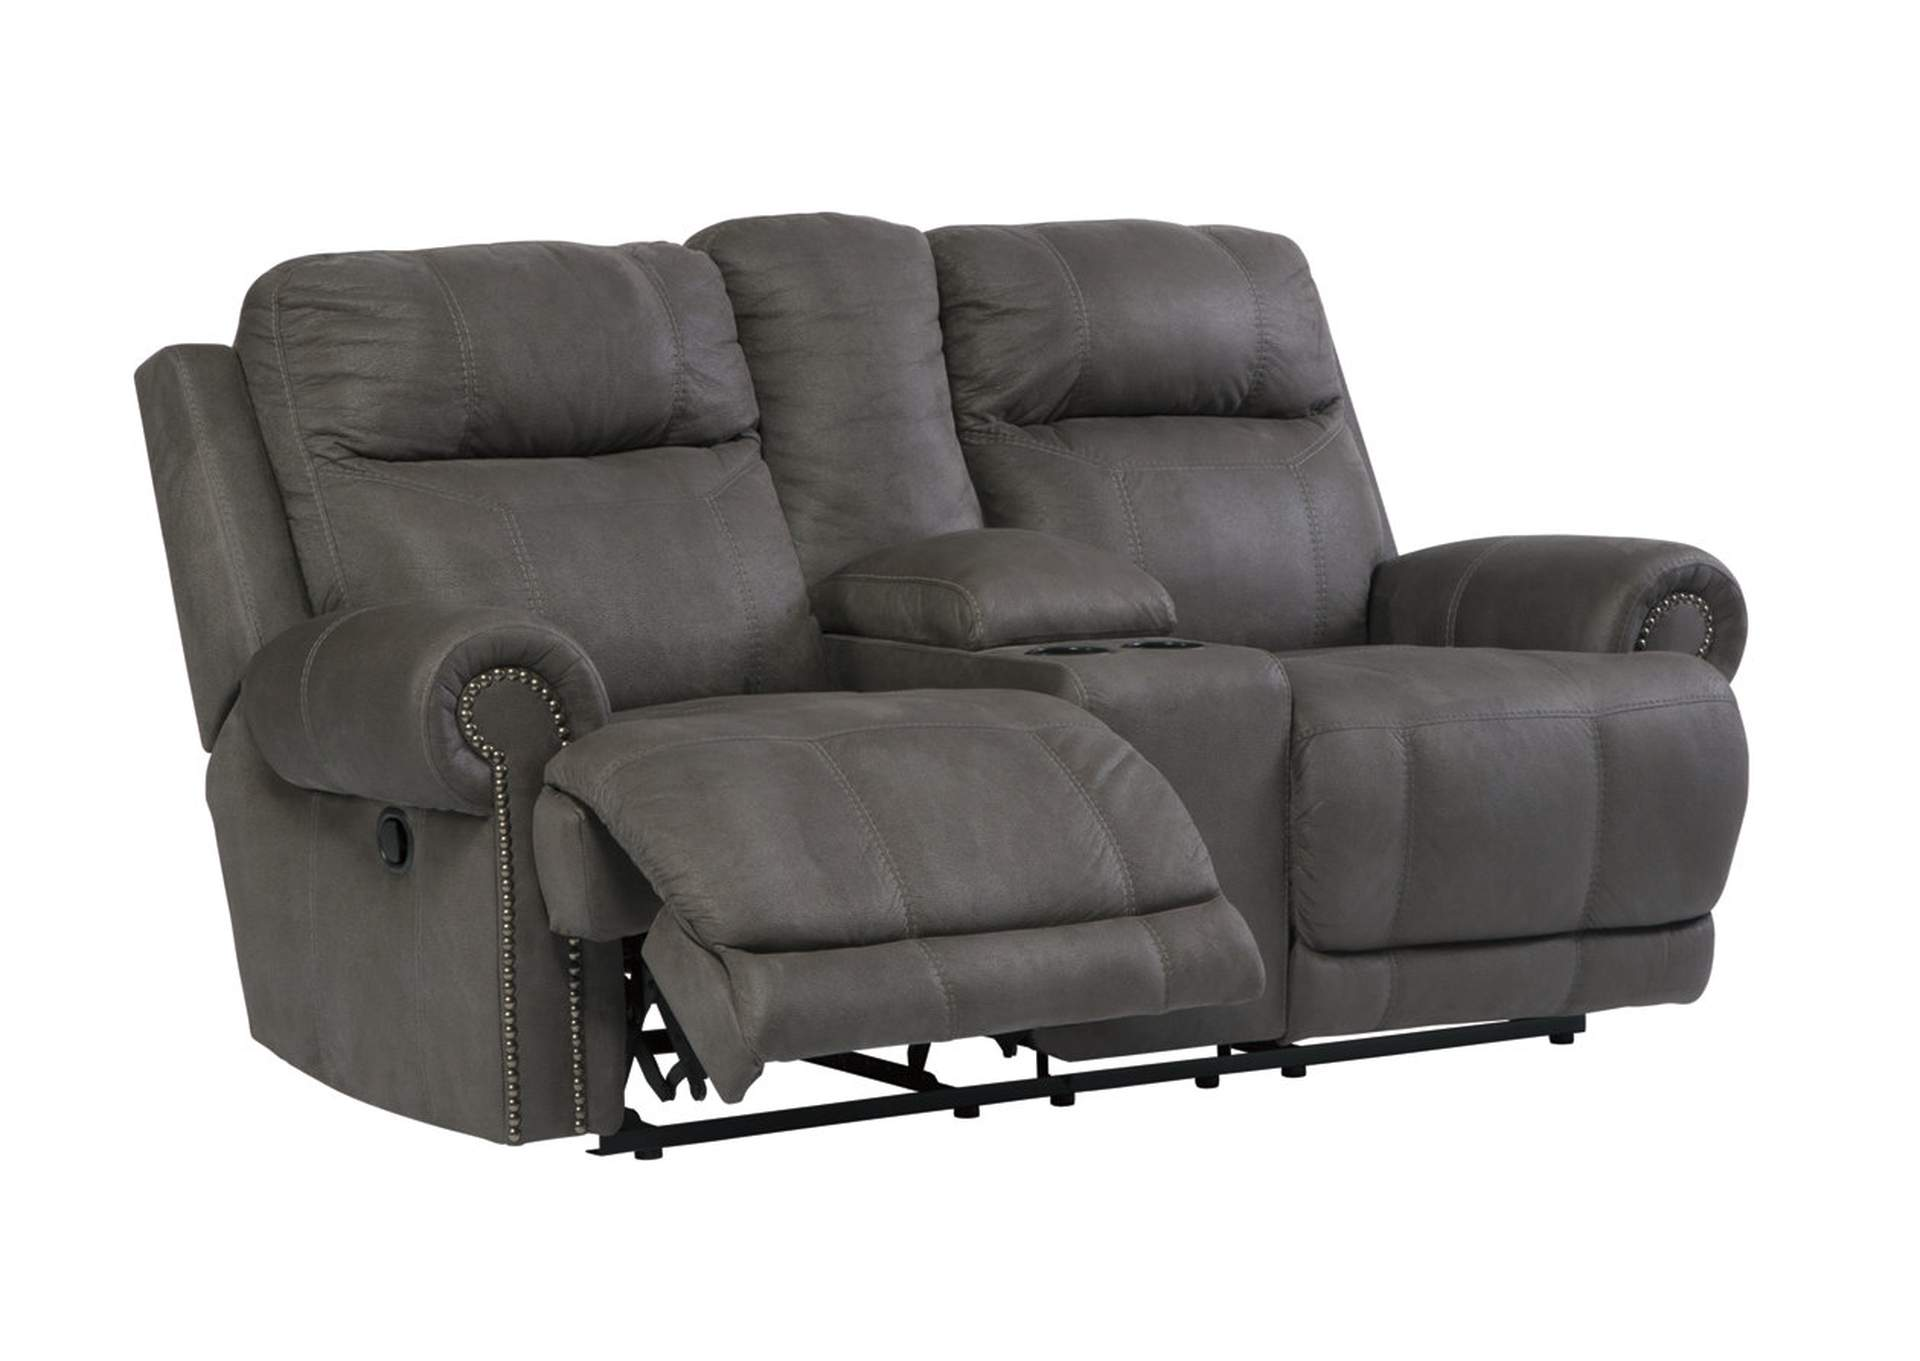 Furniture Distributors Havelock Nc Austere Gray Double Reclining Power Loveseat W Console